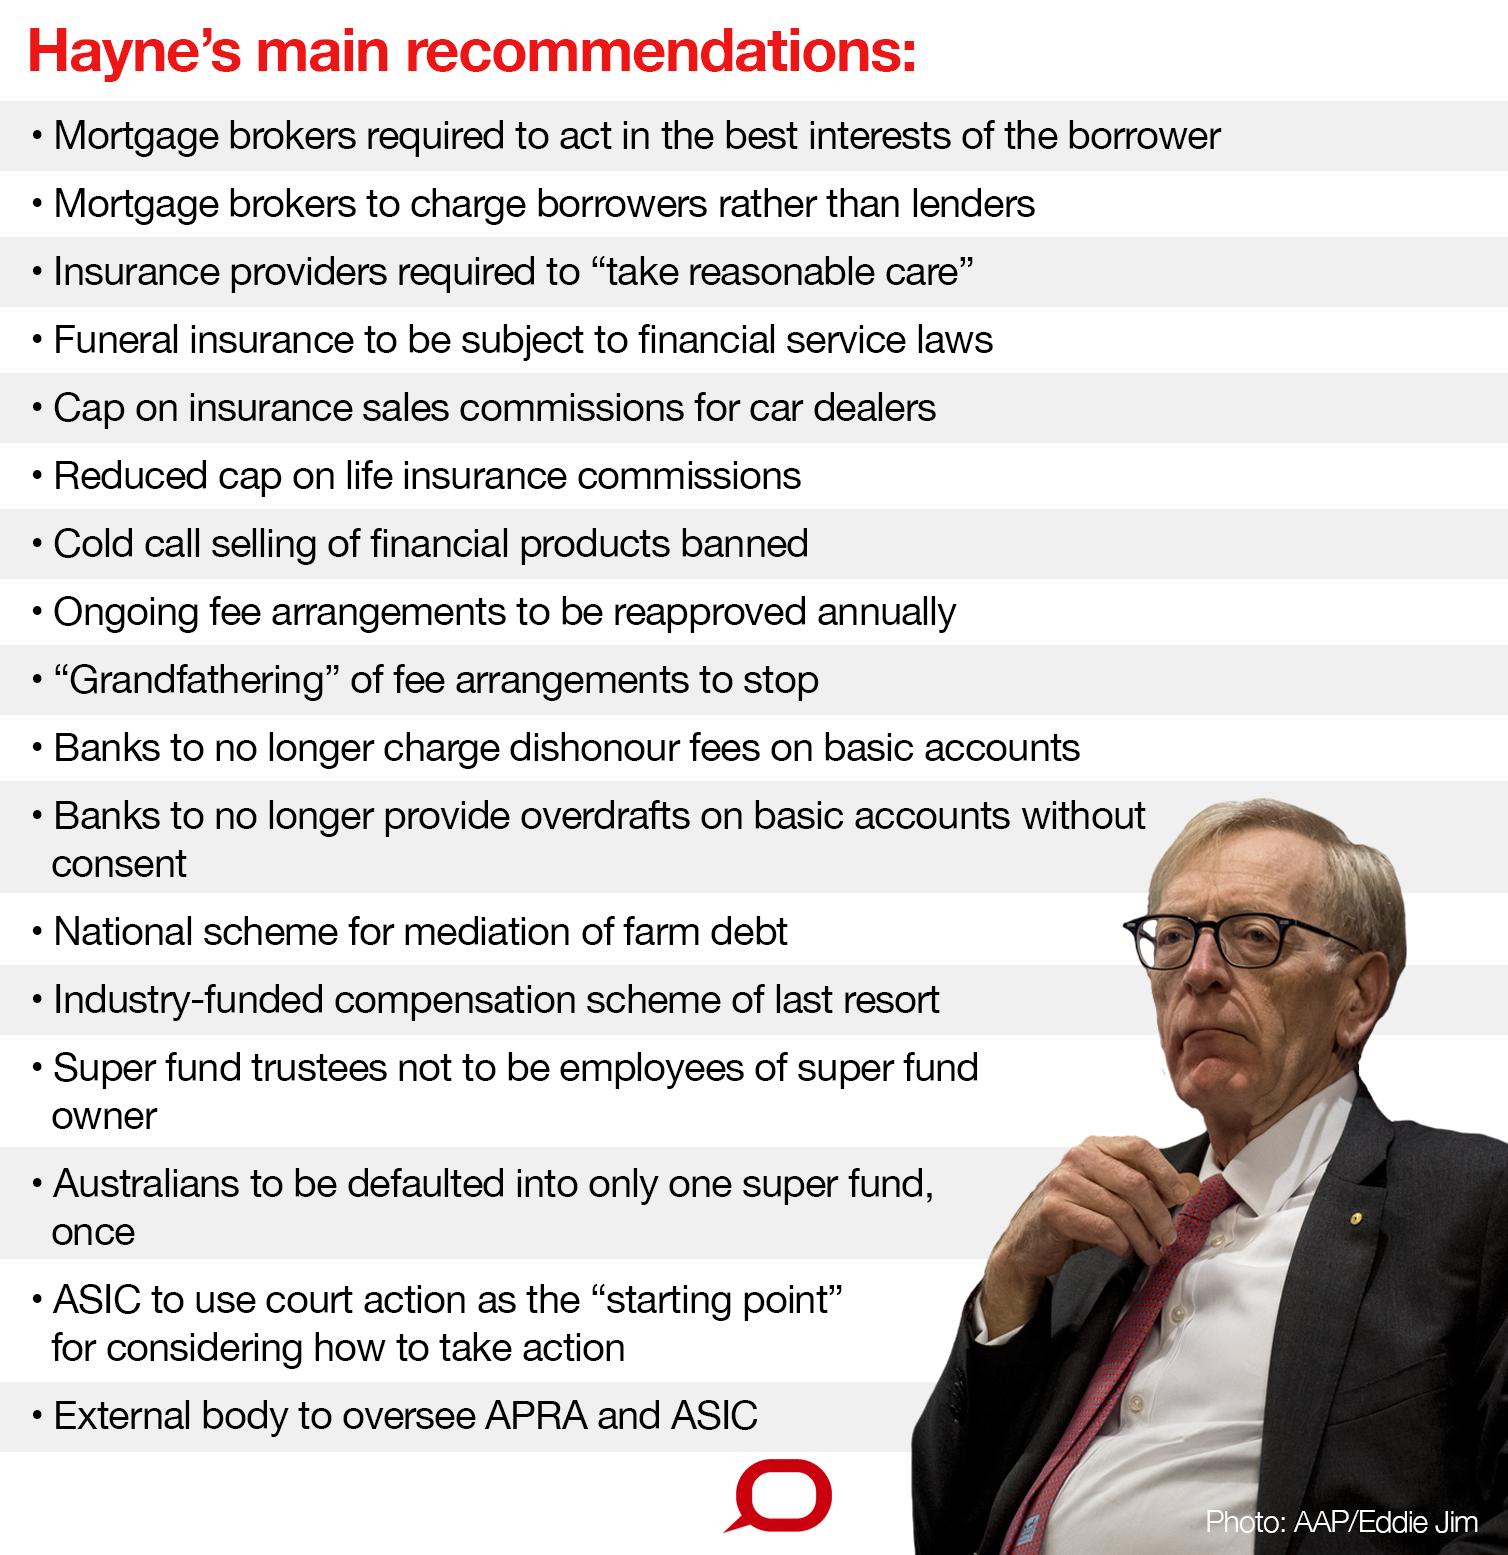 Understanding Hayne. Why less is more